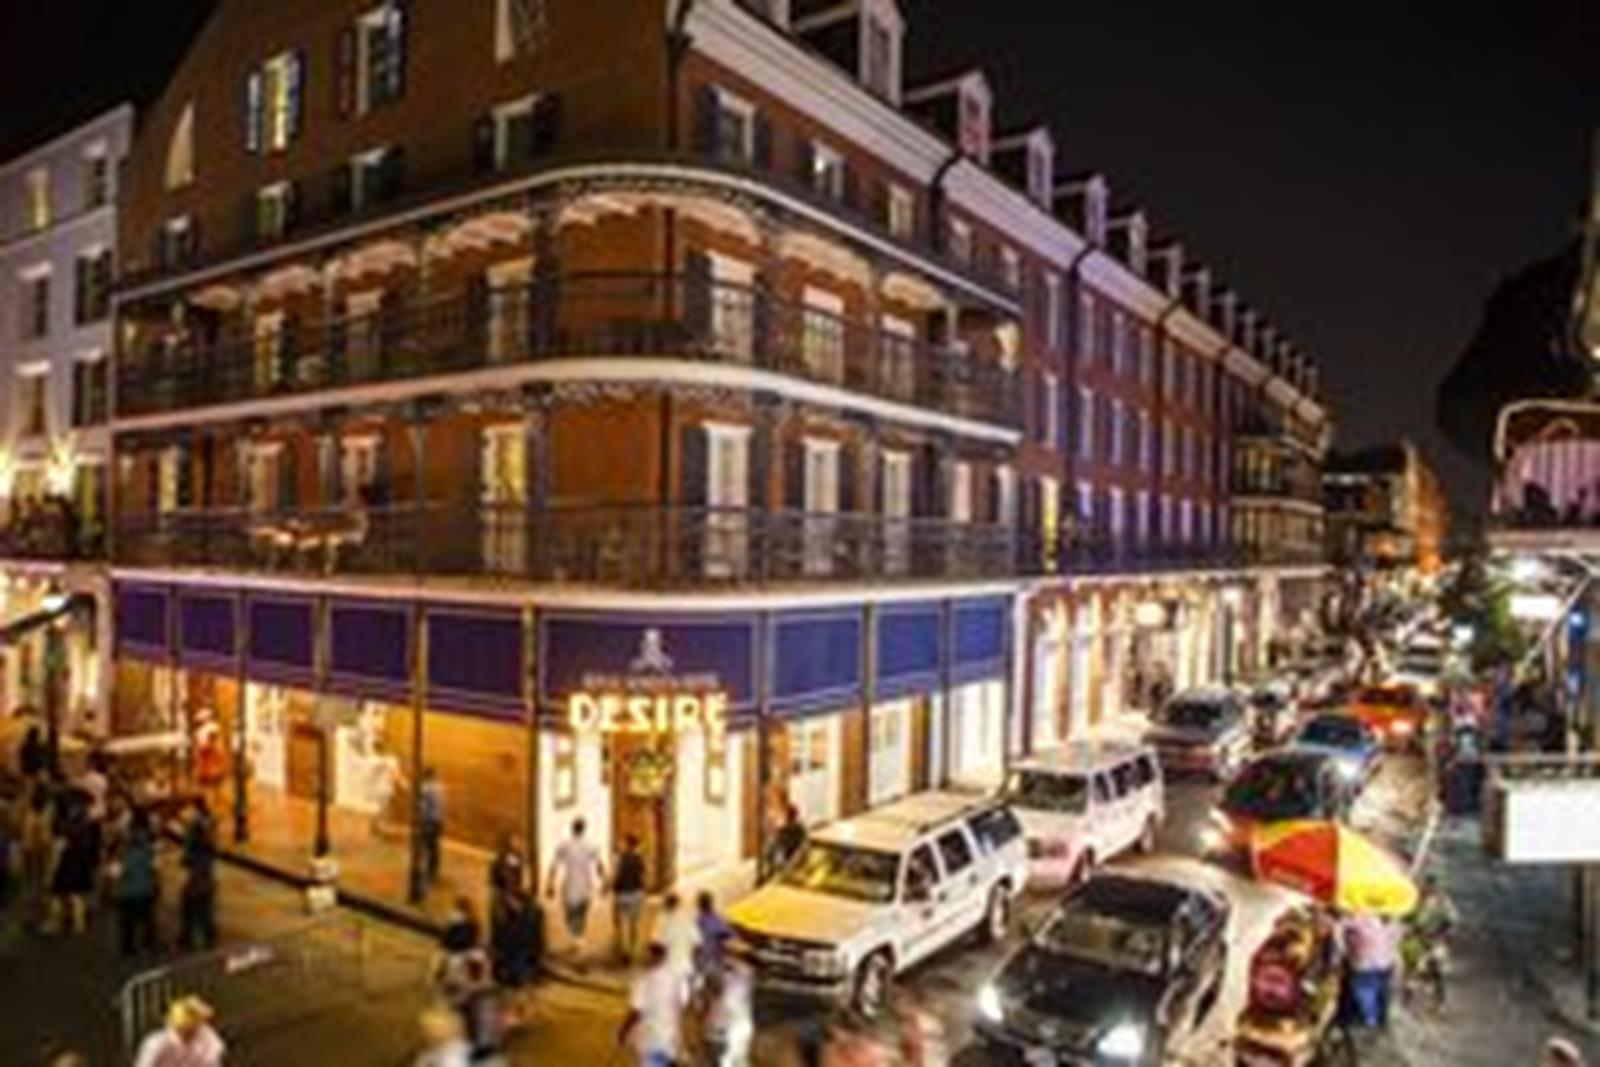 Royal Sonesta in the French Quarter. Photo from New Orleans Convention and Visitors Bureau.